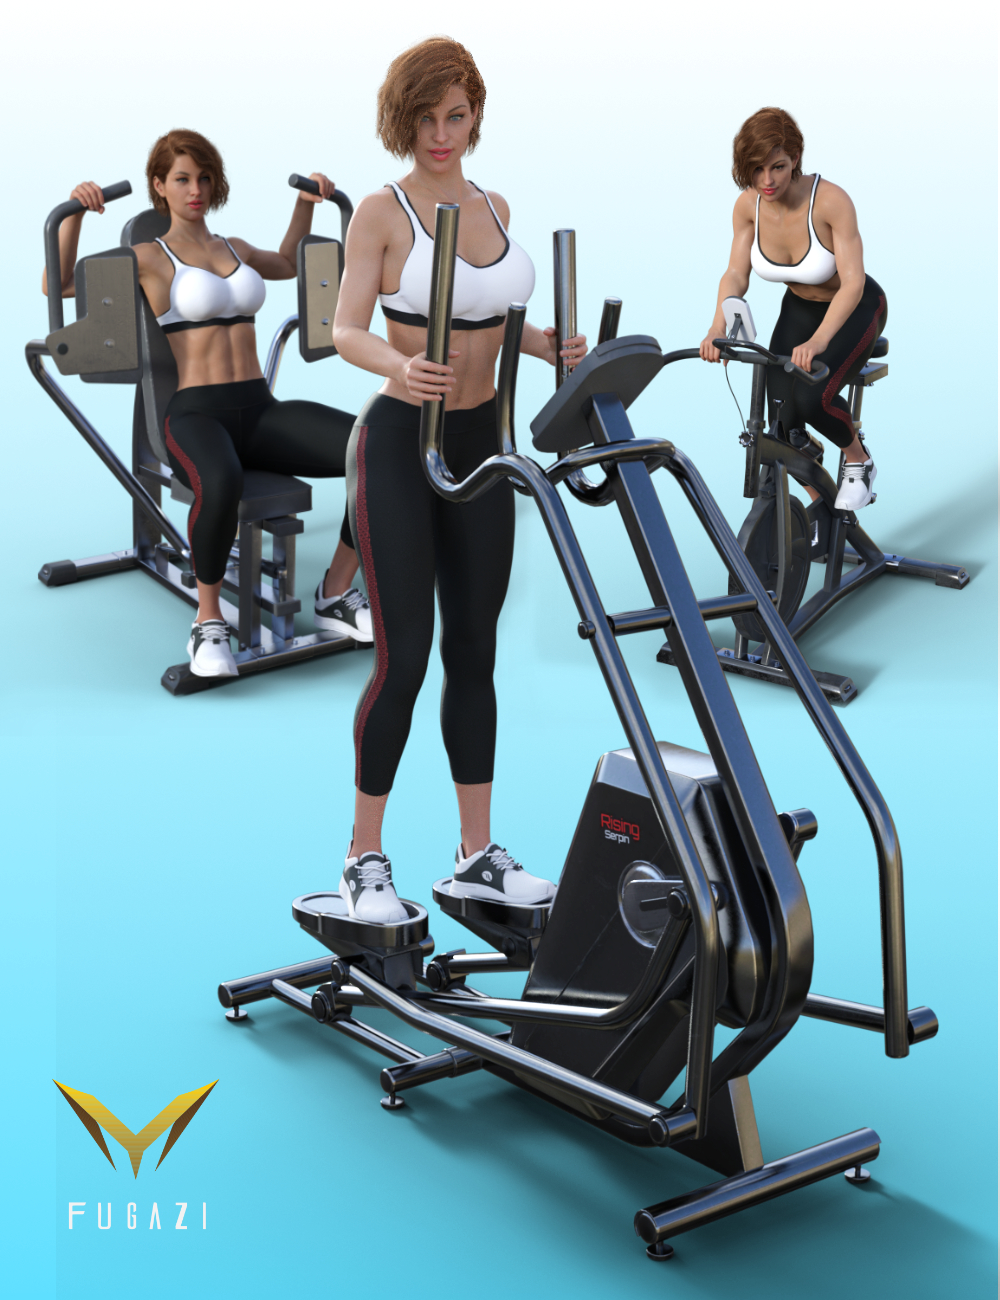 FG Fitness Equipment and Poses for Genesis 8 and 8.1 Females by: Fugazi1968Ironman, 3D Models by Daz 3D